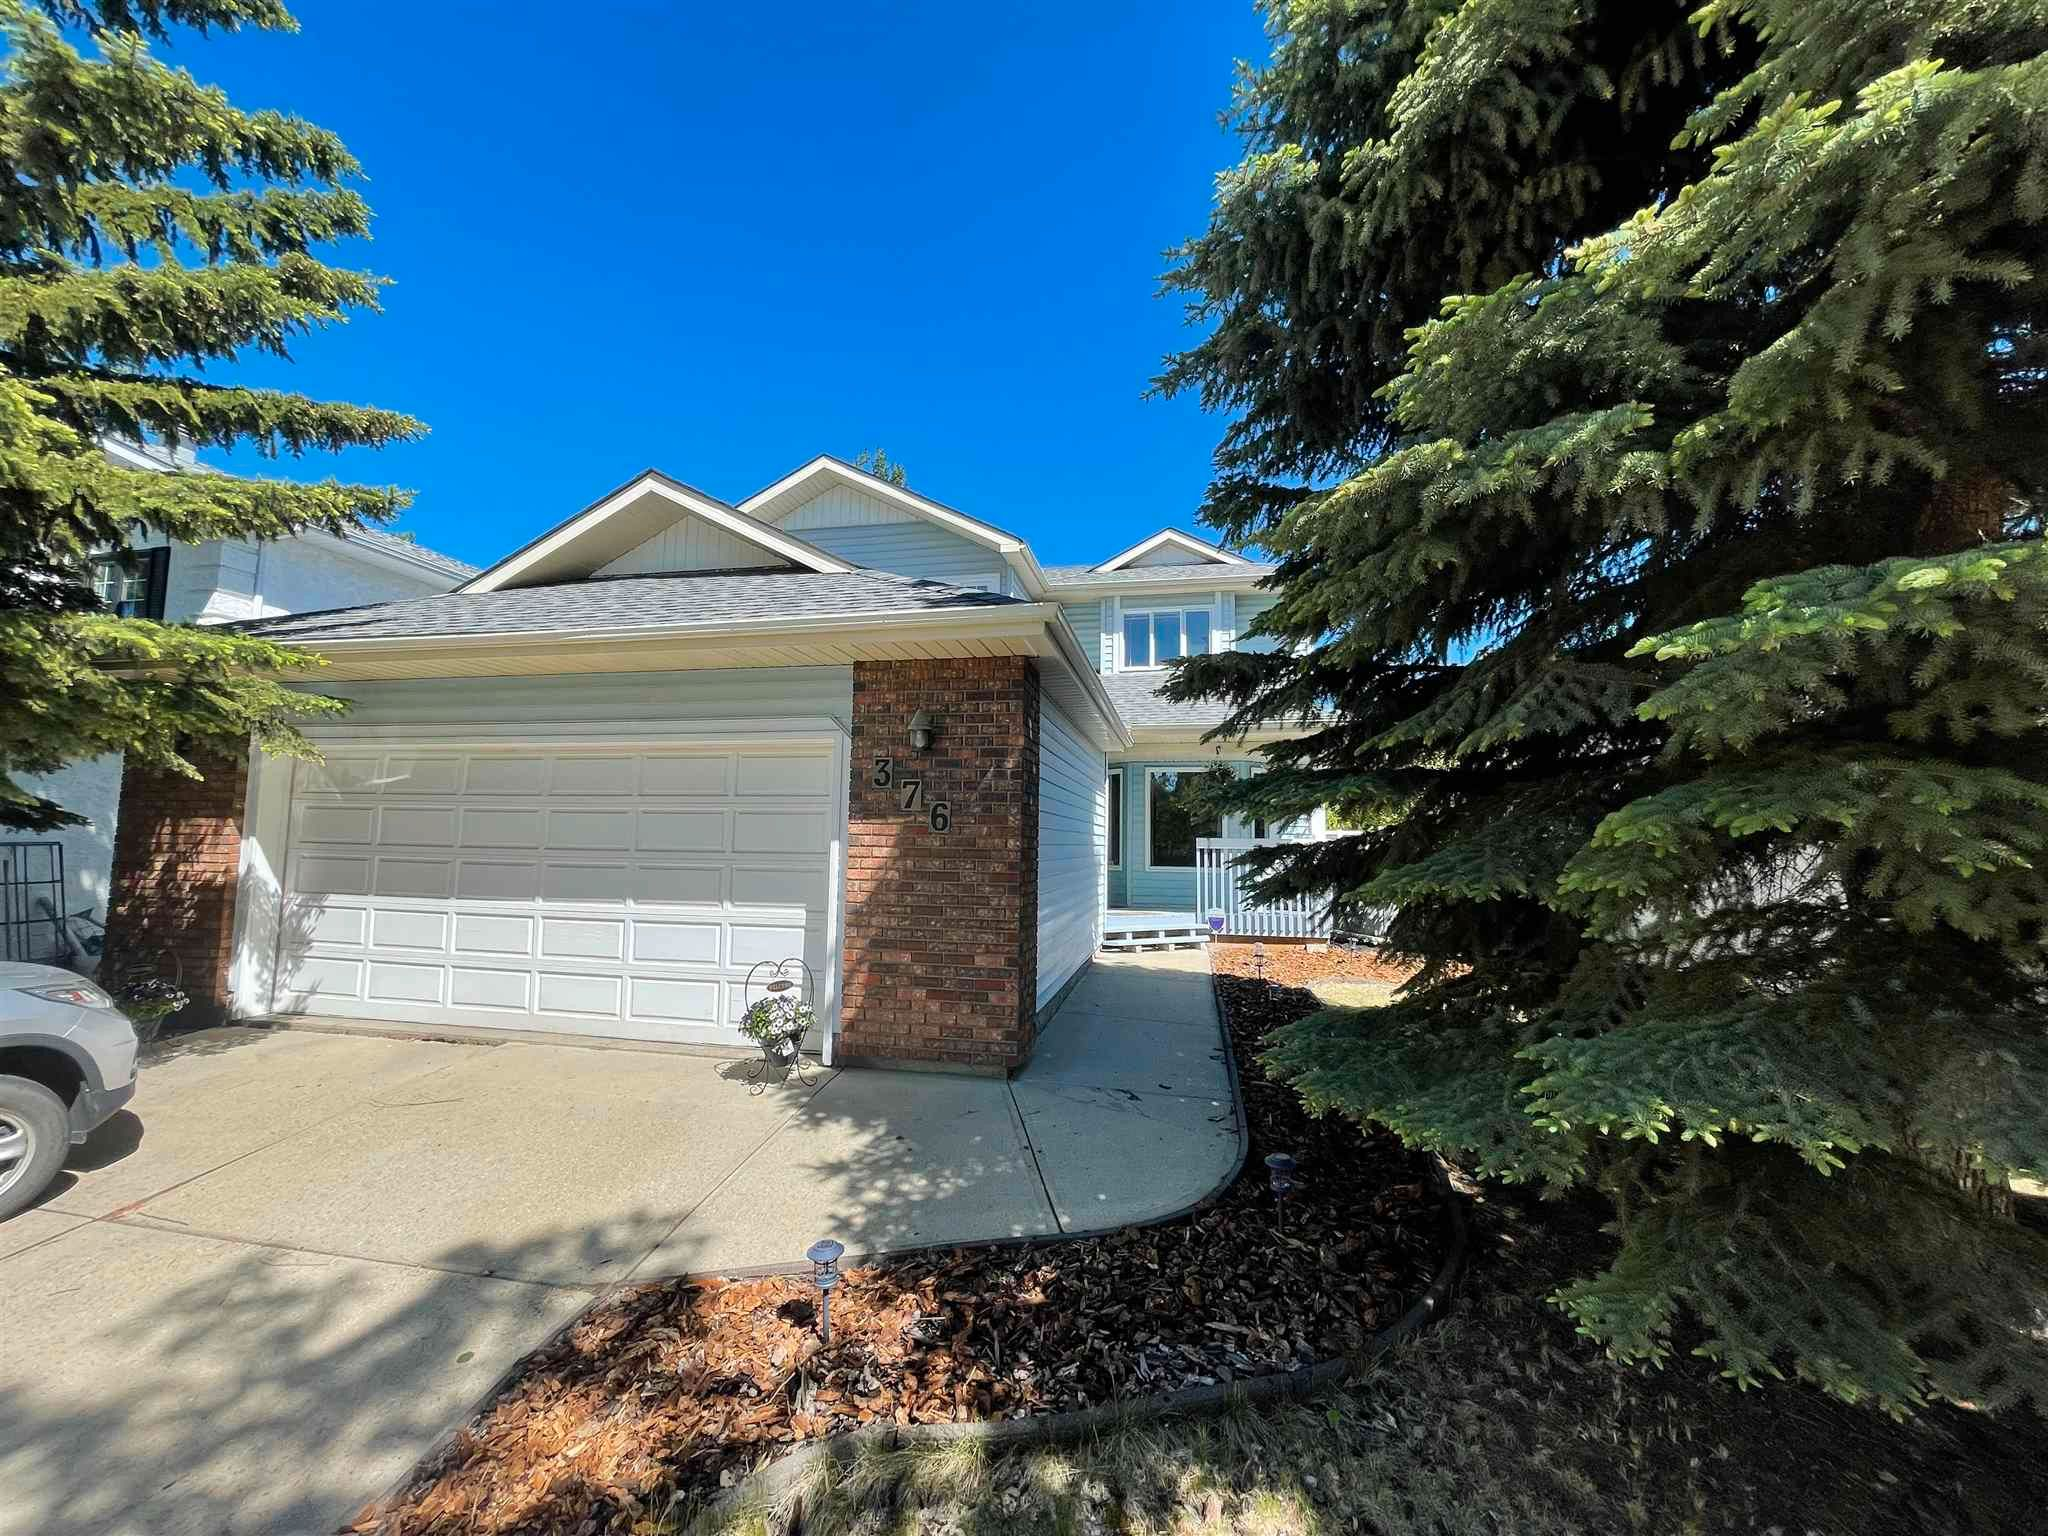 Main Photo: 376 Ormsby Road in Edmonton: Zone 20 House for sale : MLS®# E4255674